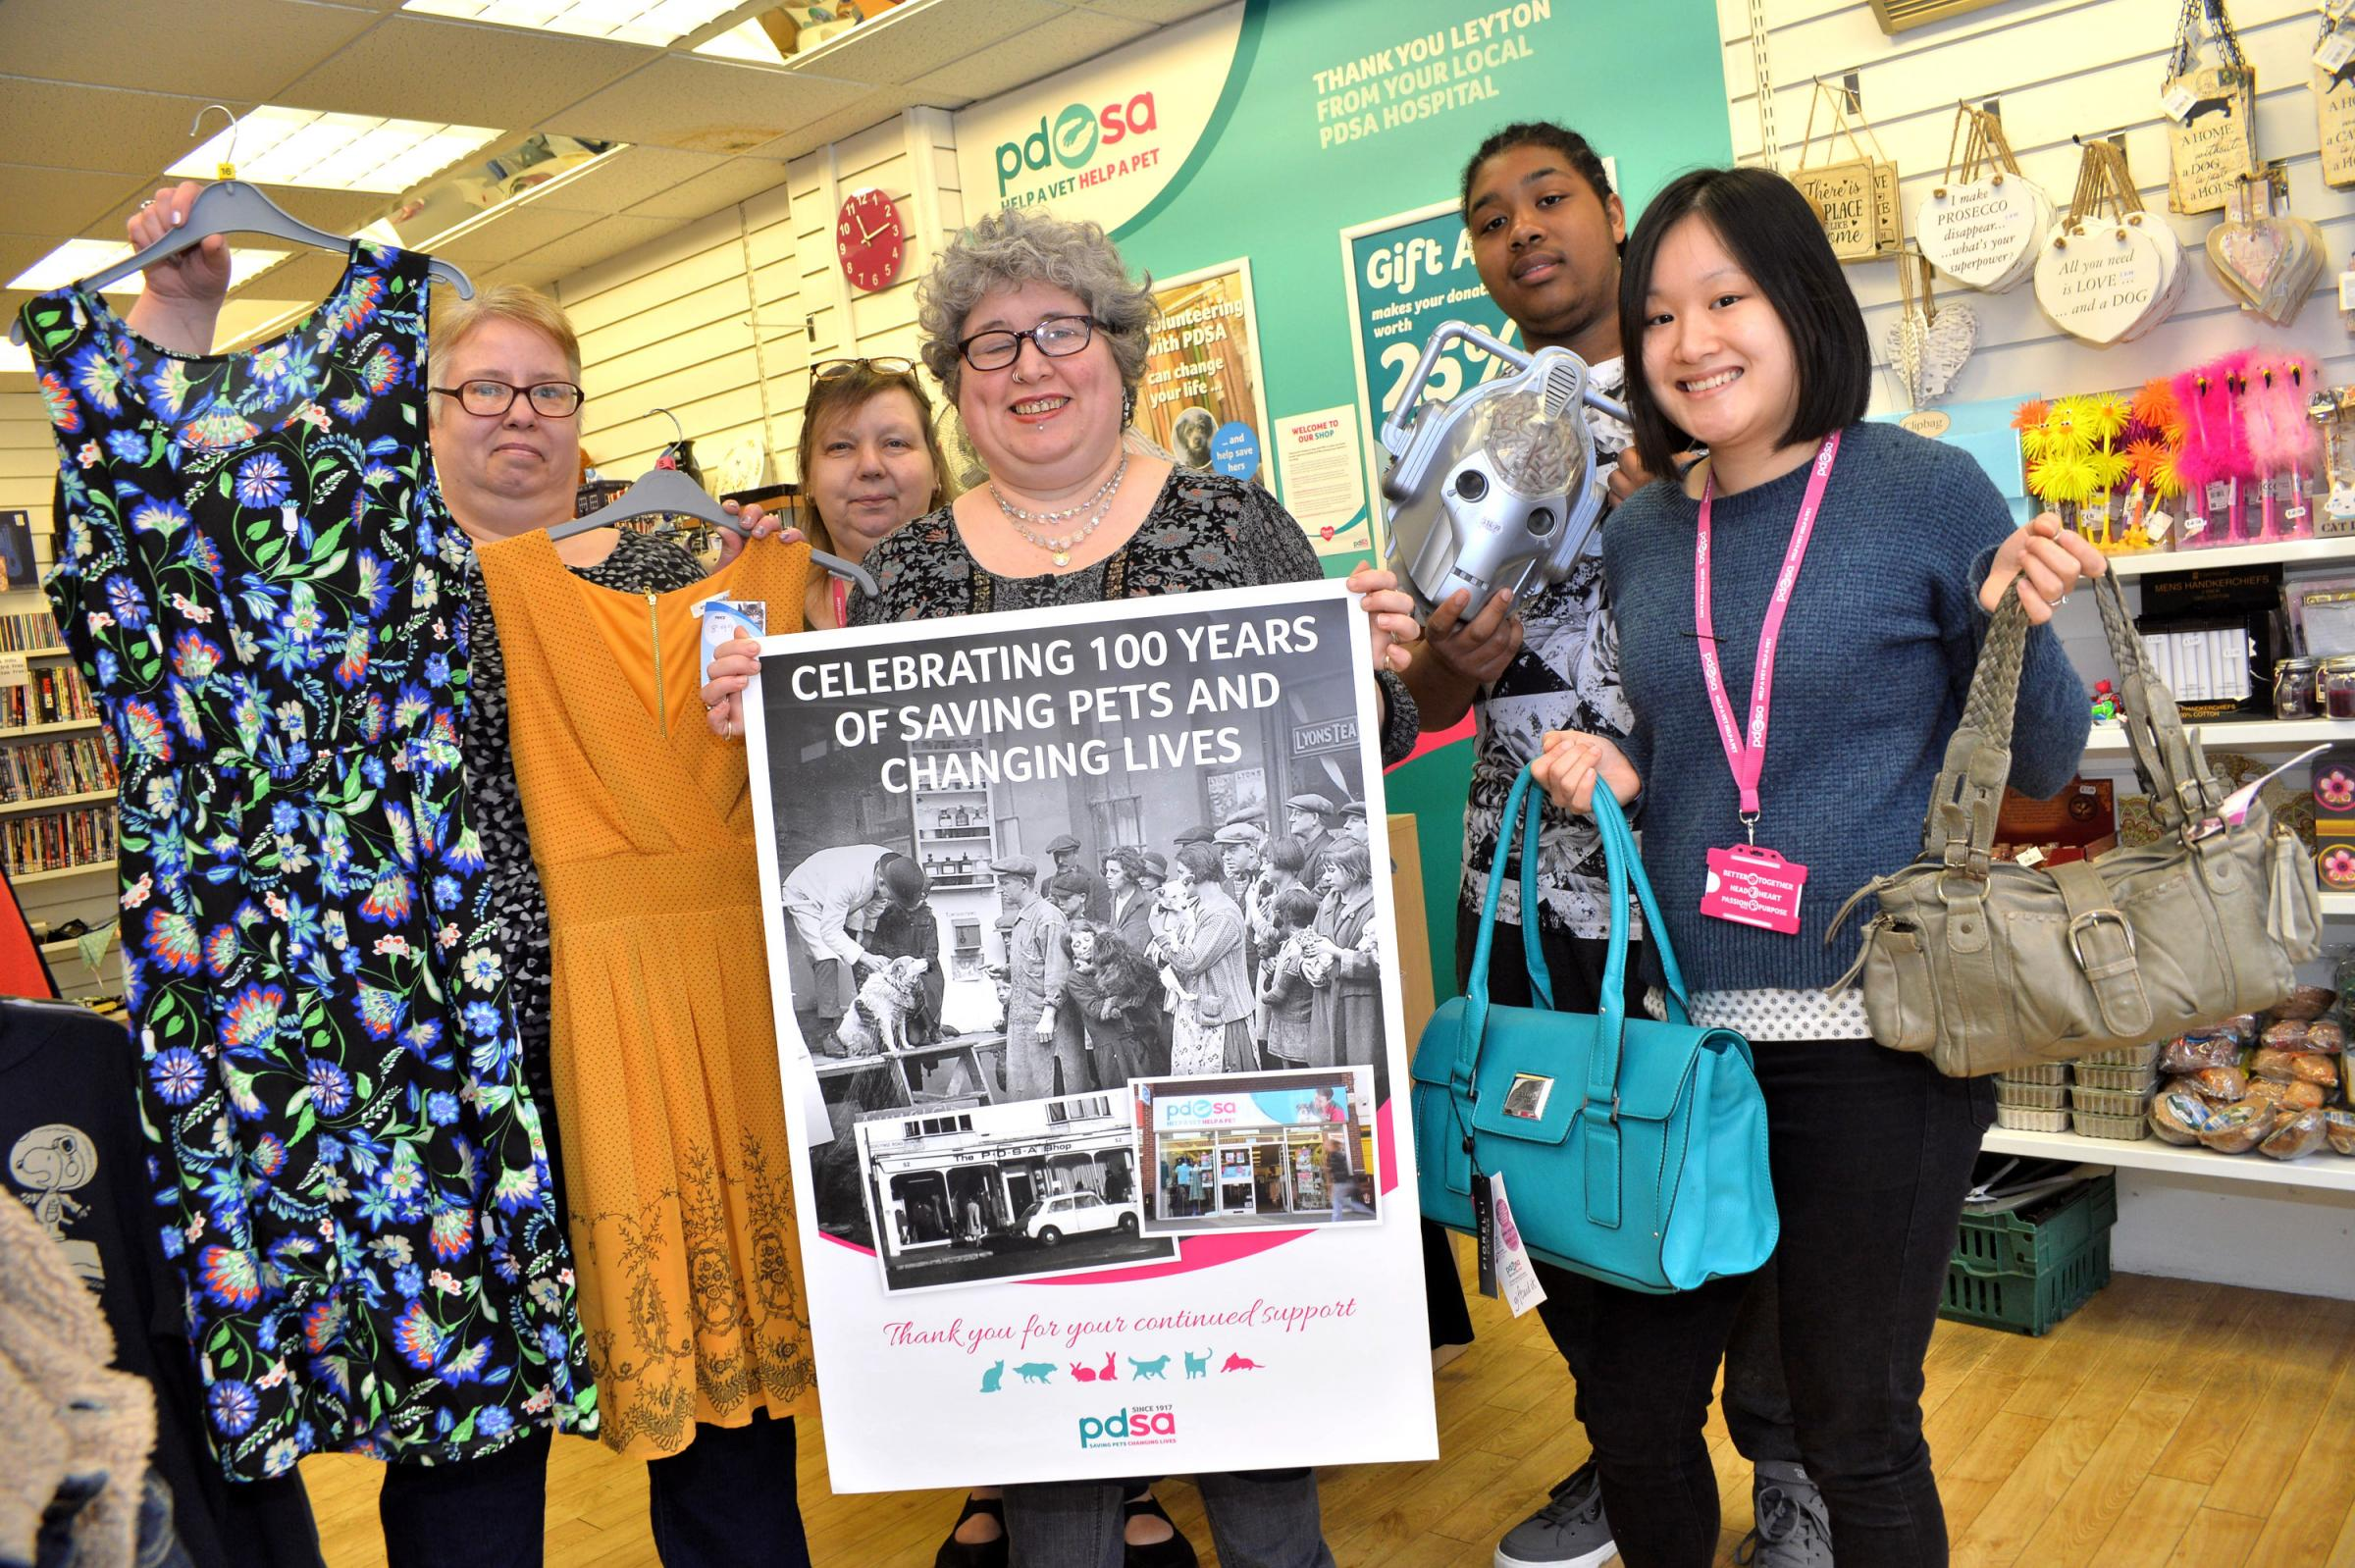 The PDSA charity shop in Leyton is appealling for donations. L-R Alex Wilson, Kim Jarvis, Susan White, Aqeel Garner and Kim Jarvis as the charity celebrates 100 years. (13/3/2018) EL91916-02